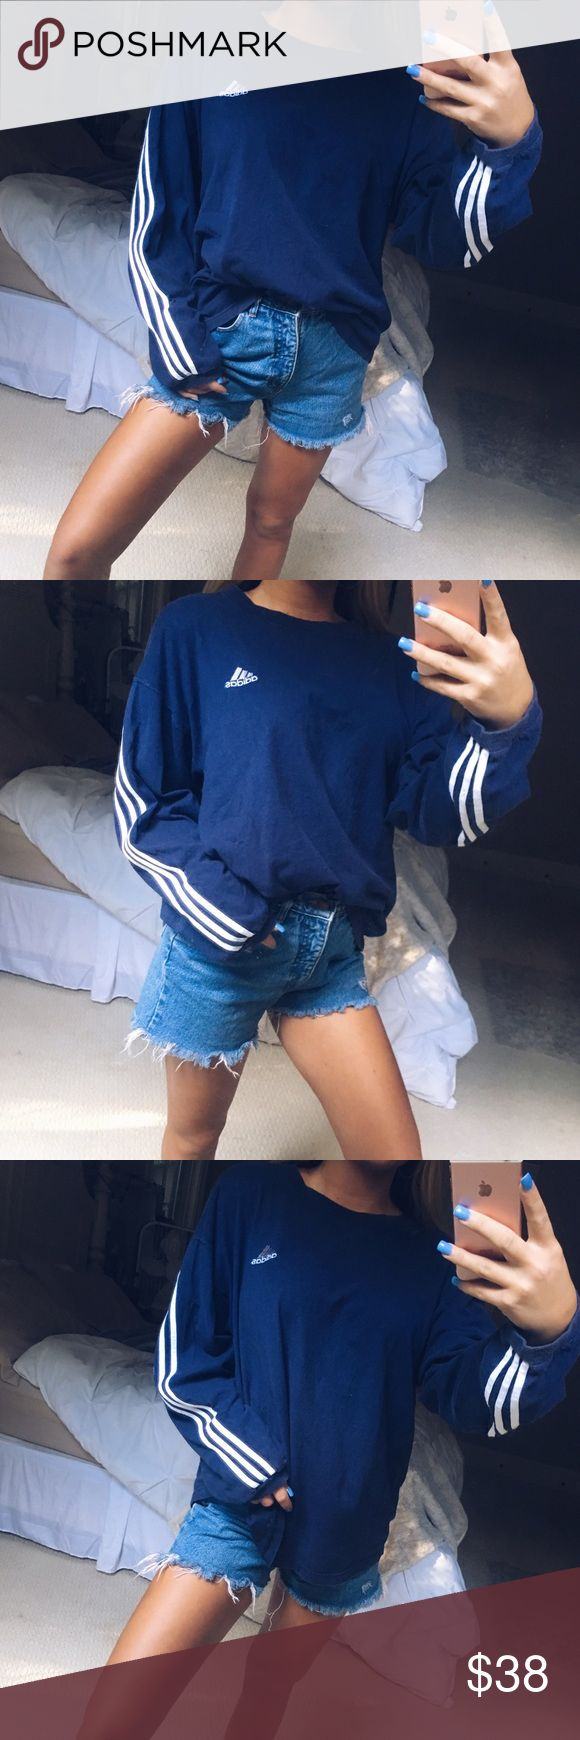 navy & white adidas tee super cute navy blue and white long sleeve oversized adidas tee. such a comfy and great for lounging in piece! has a bit of a retro look and vibe to it. looks so cute with some sweats or denim for a more day to day look! in excellent condition • size medium 🌿 adidas Tops Tees - Long Sleeve